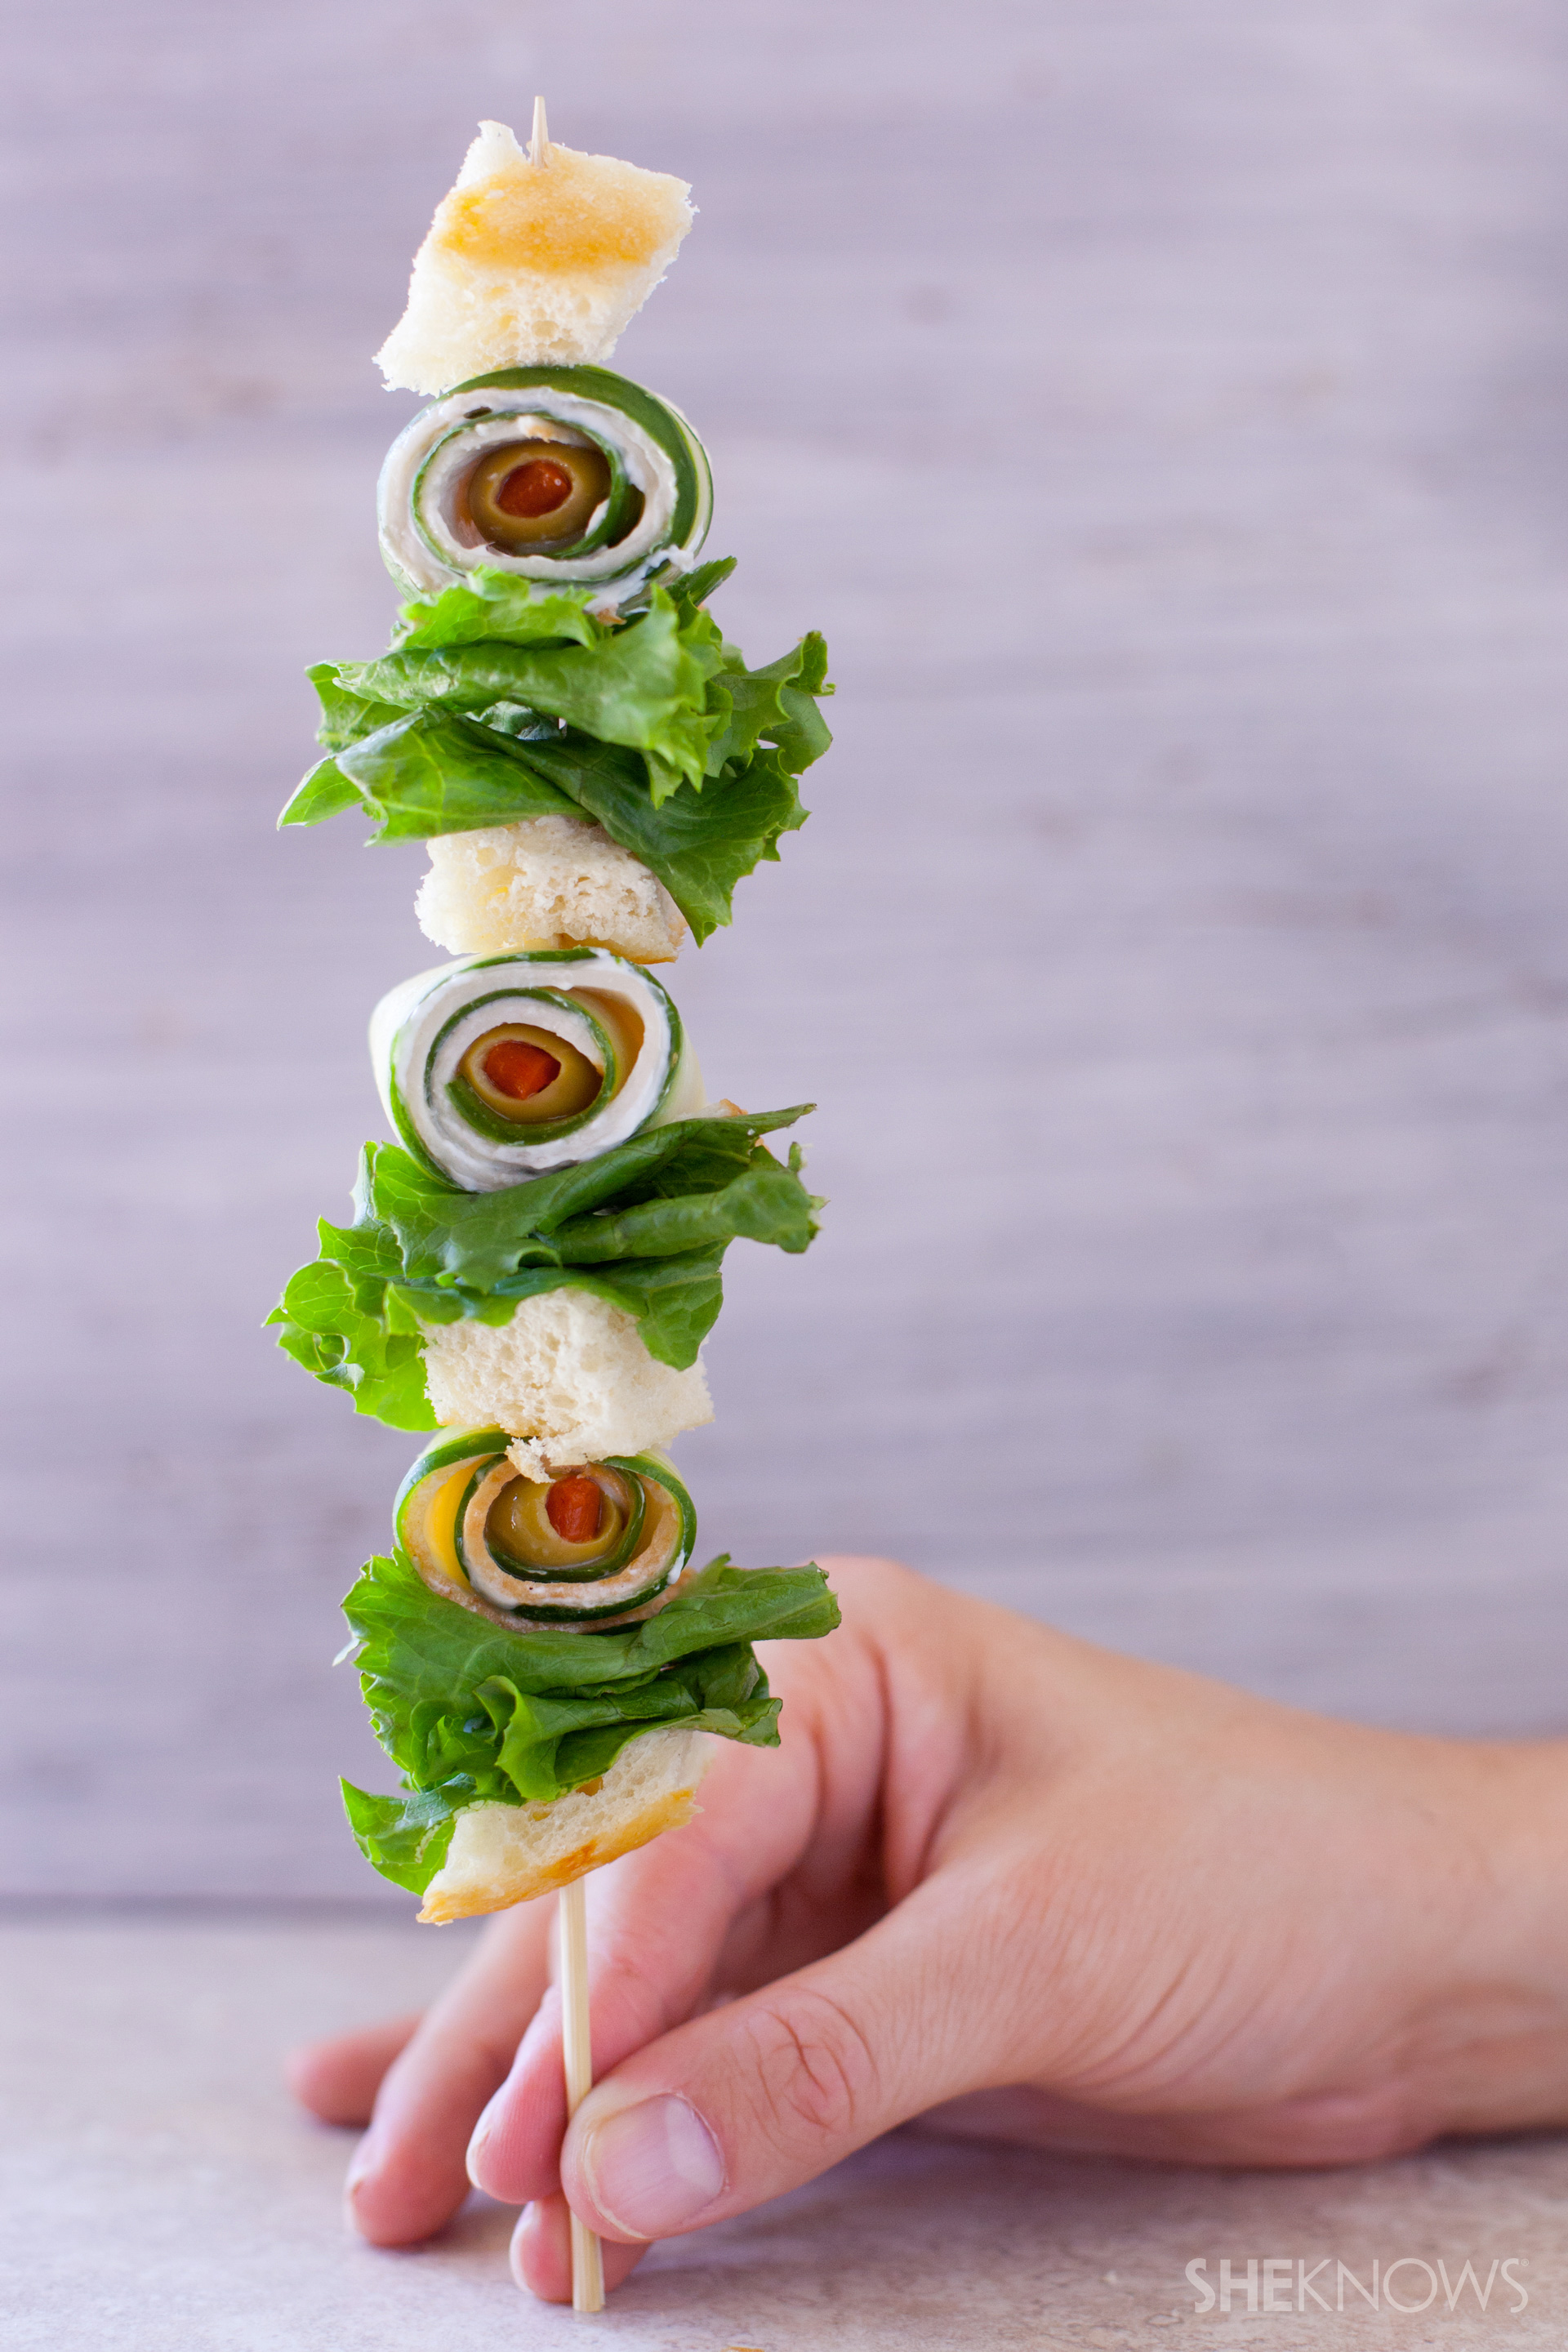 Turkey cucumber sandwich skewer